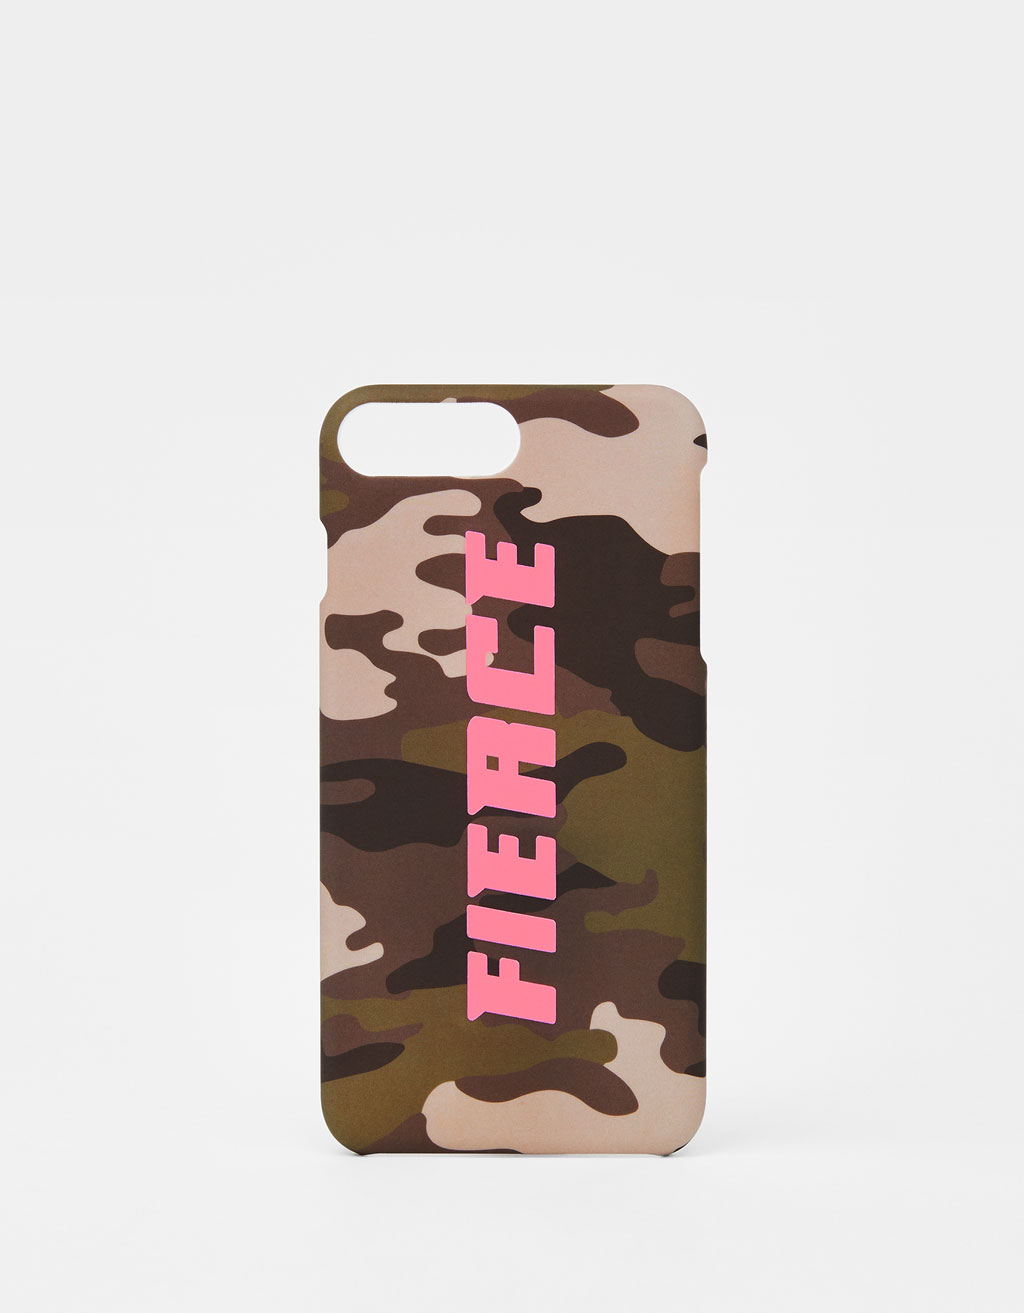 Coque camouflage iPhone 6 plus / 7 plus / 8 plus